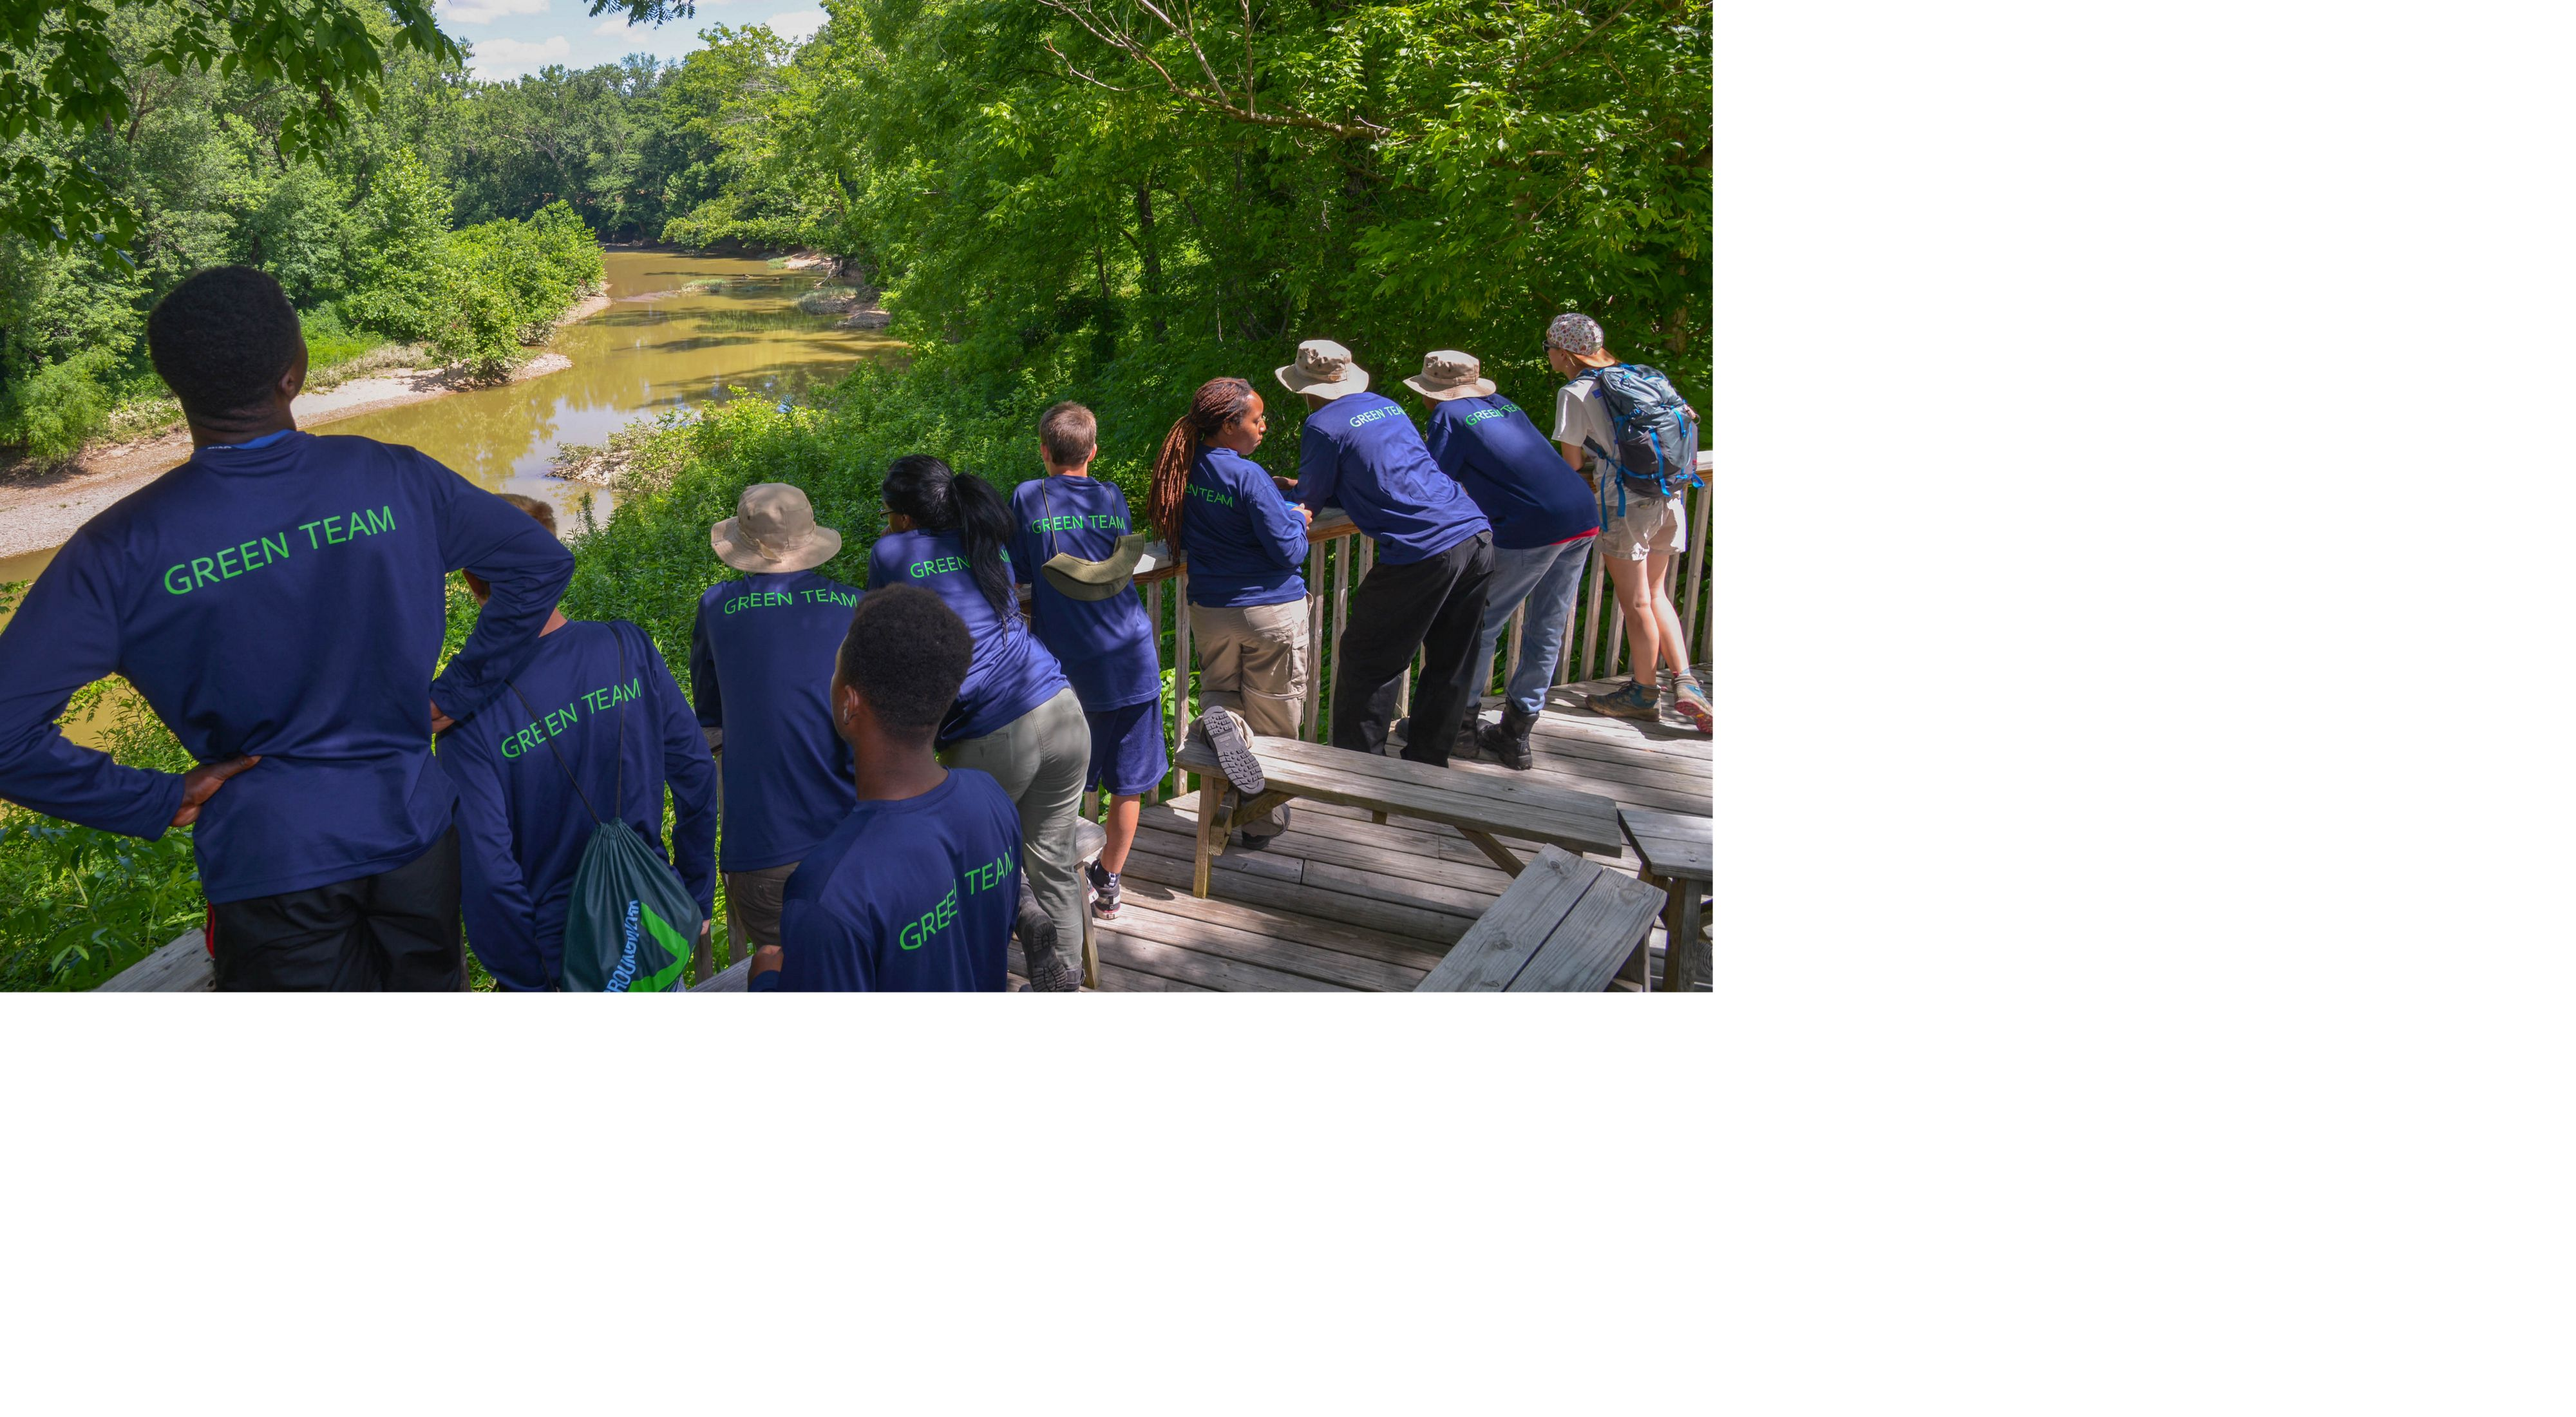 Youth from the Groundwork Cincinnati - Millcreek Green Team visit the Edge of Appalachia